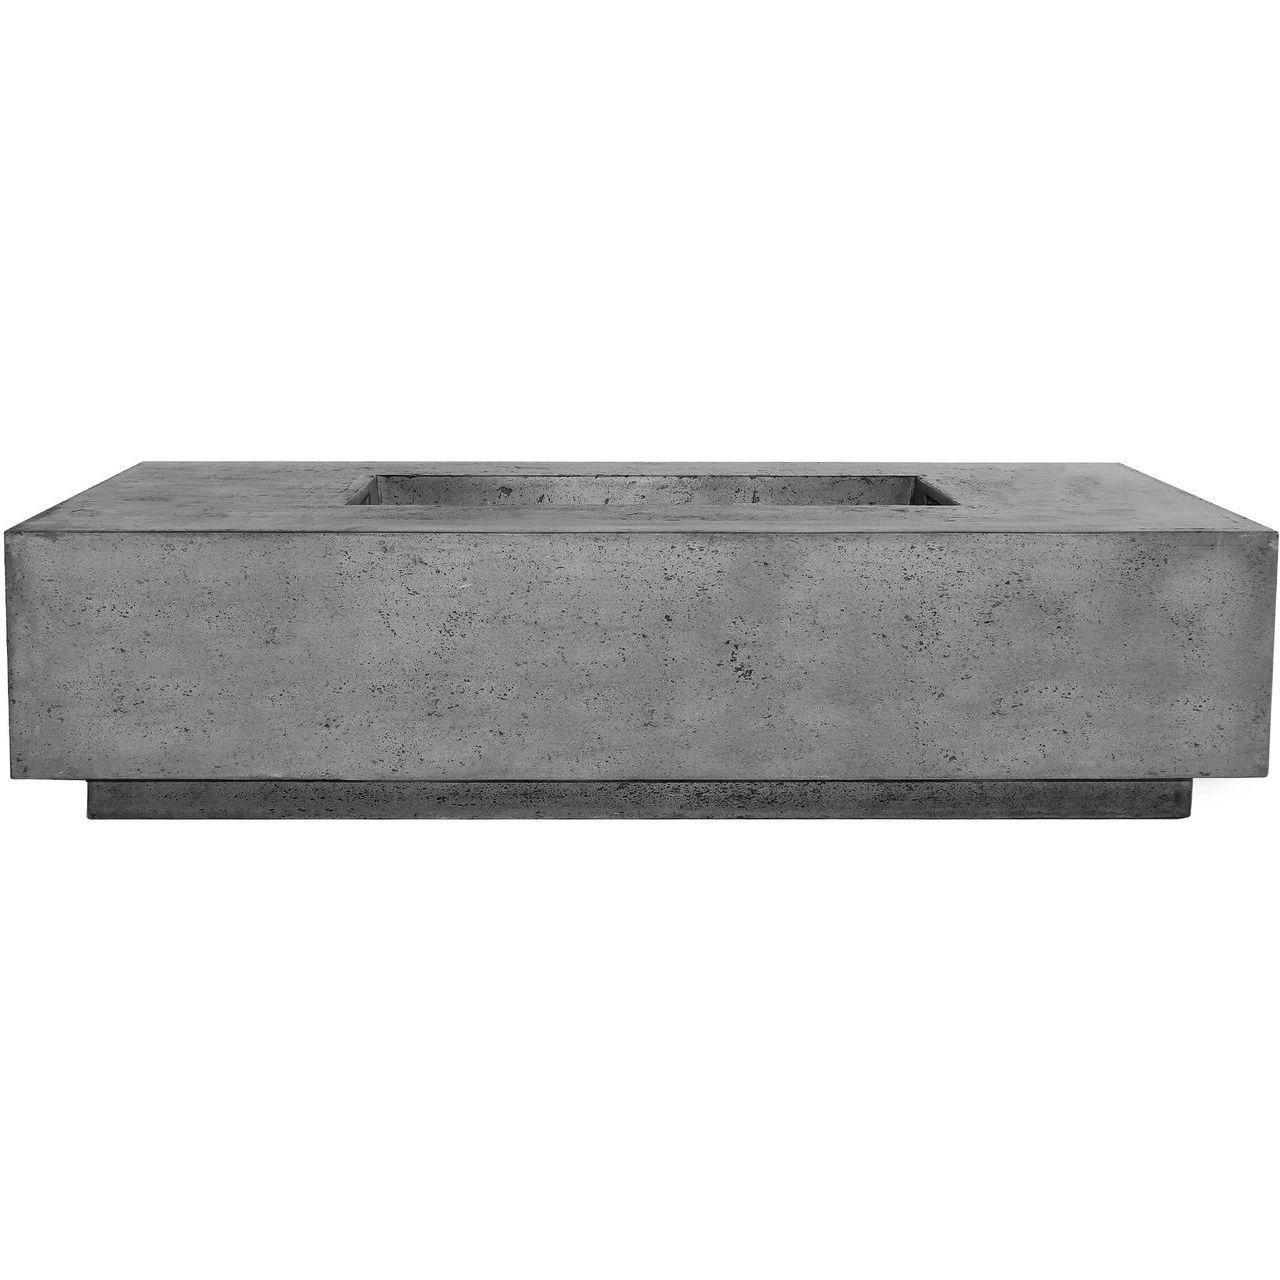 Prism Hardscapes Tavola 66 Slim Fire Table in Pewter - NG